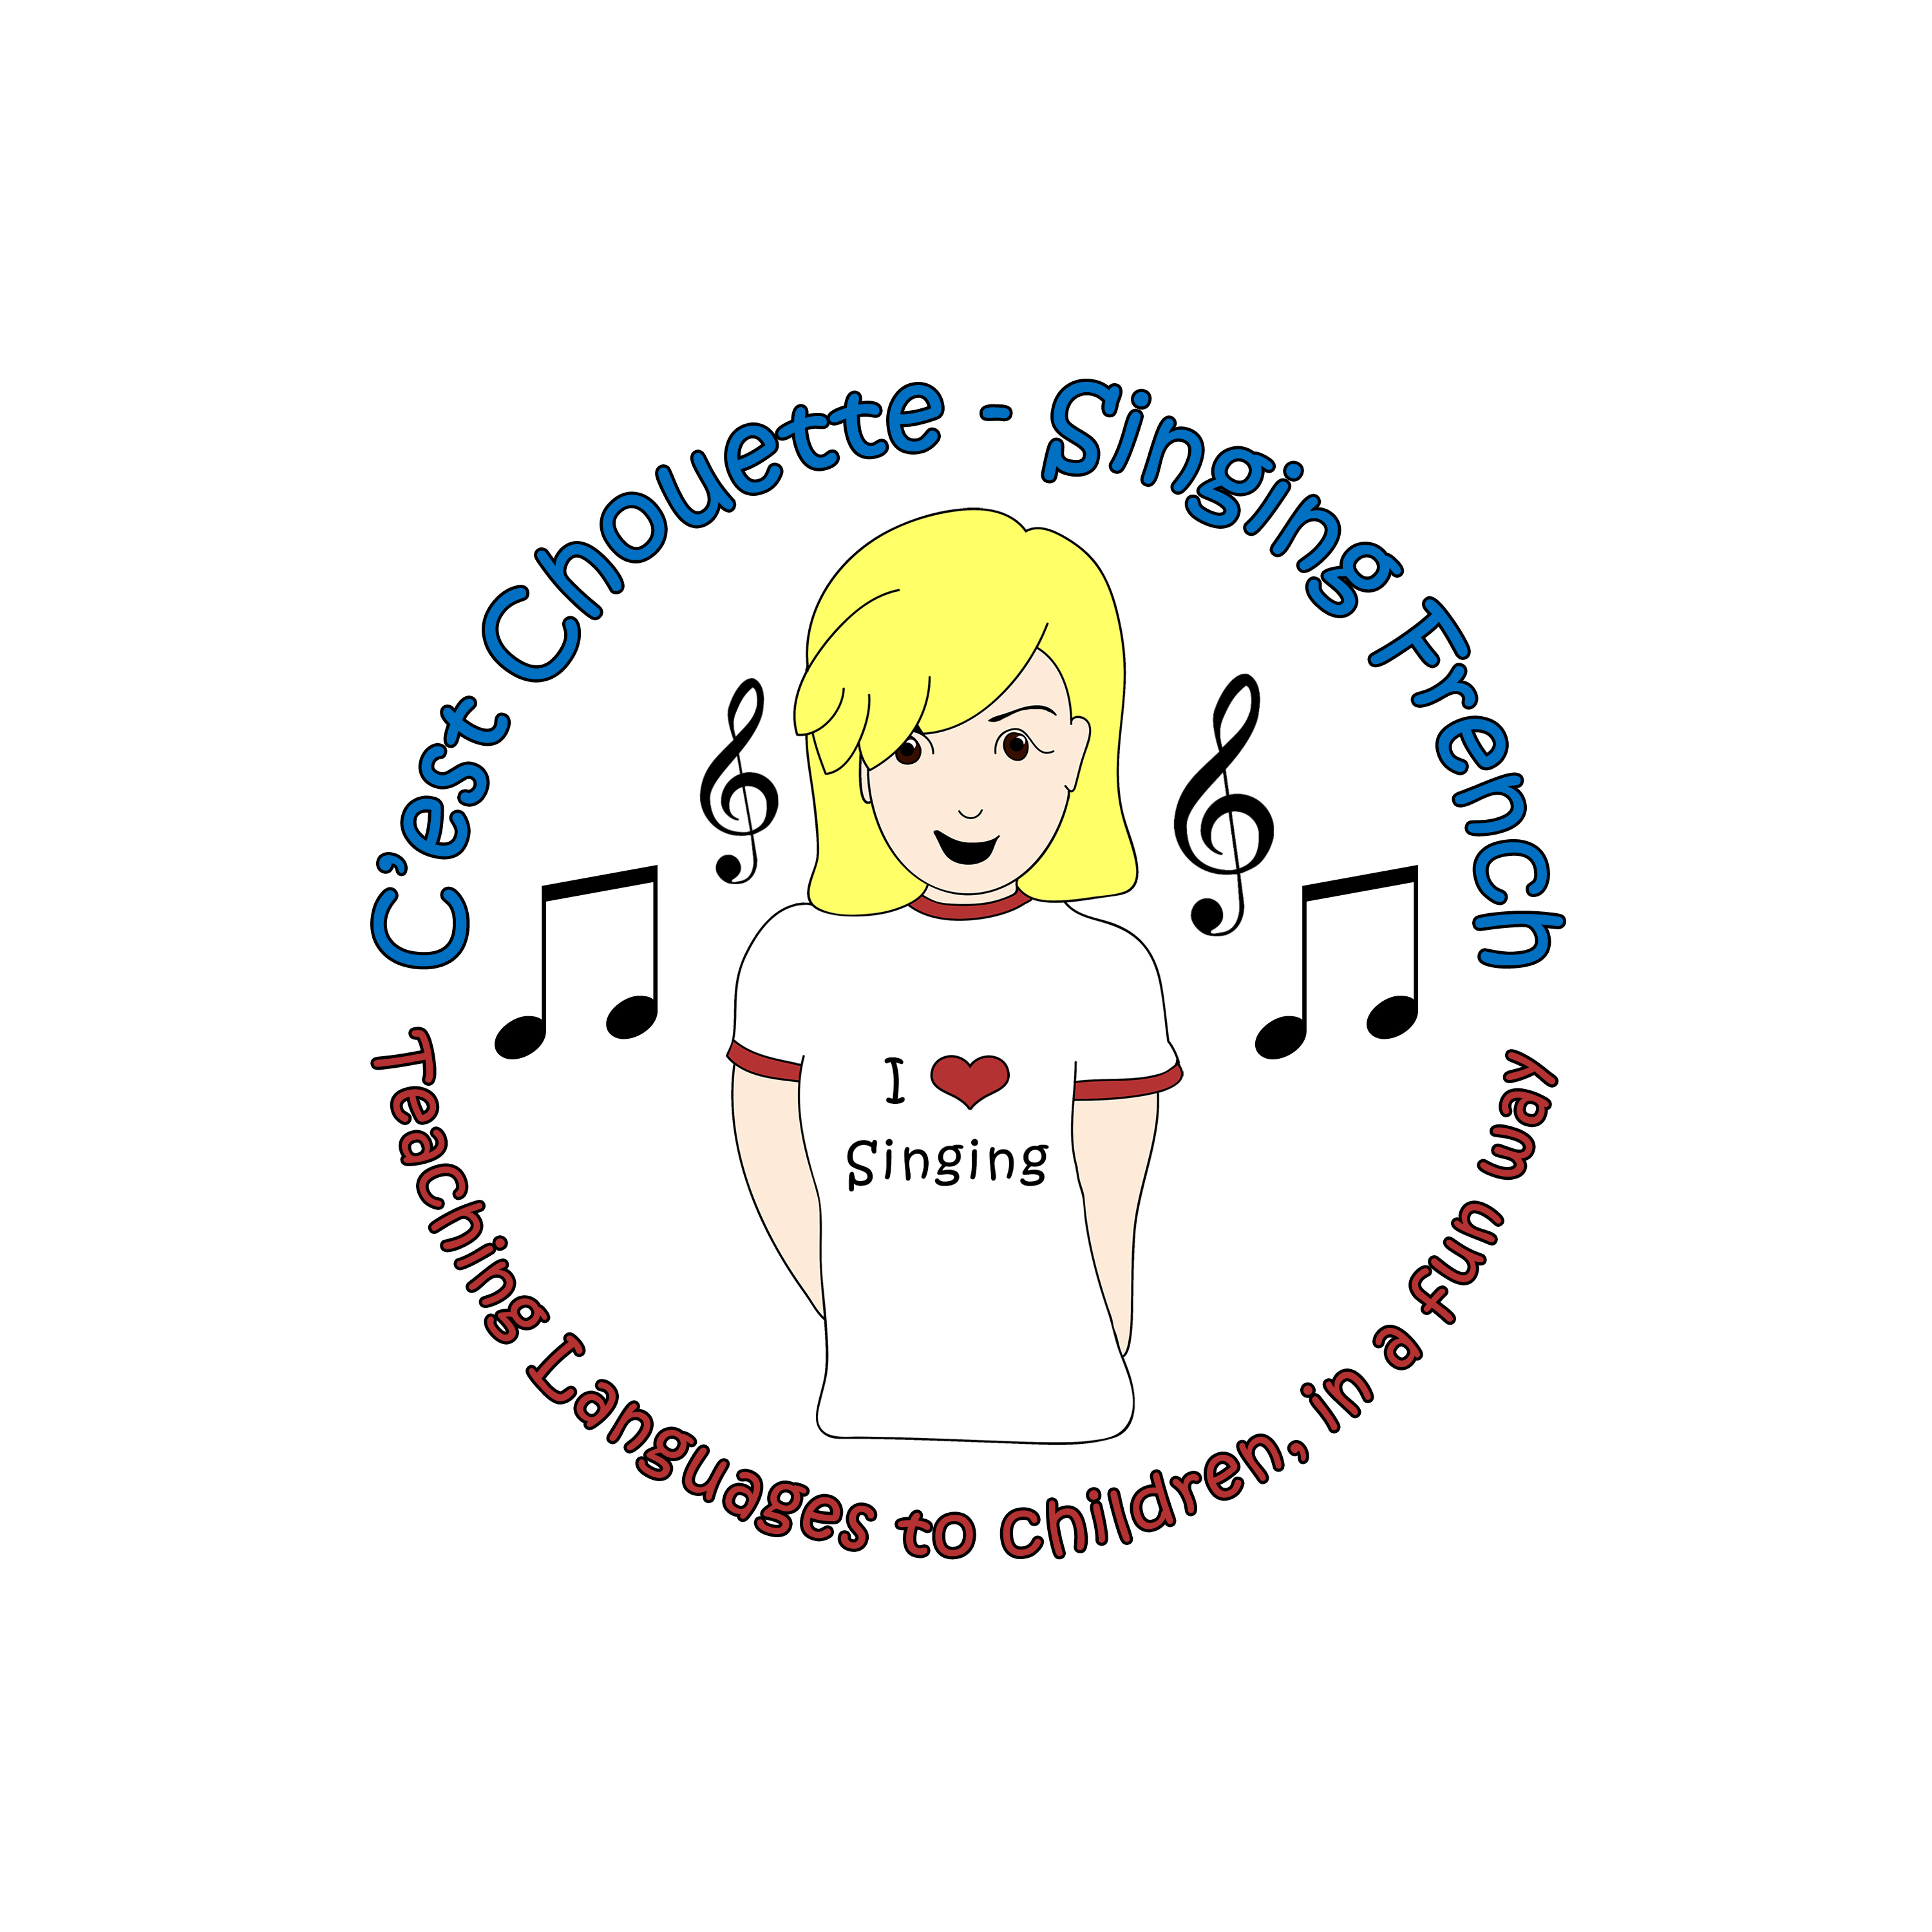 C'est chouette singing French